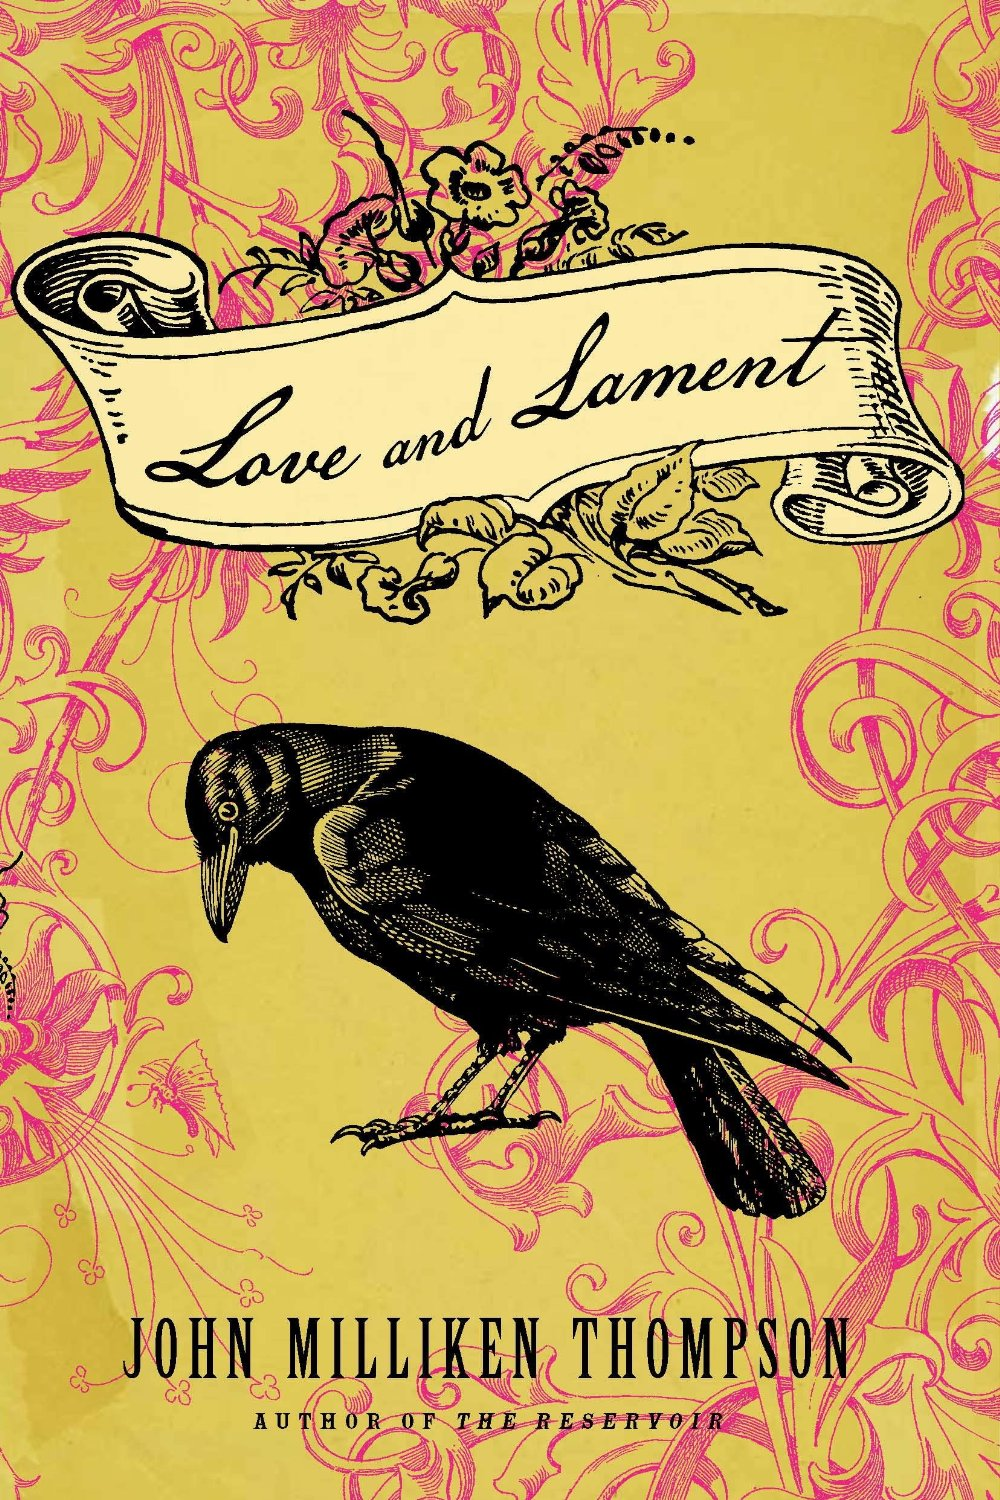 Love and lament cover.jpg